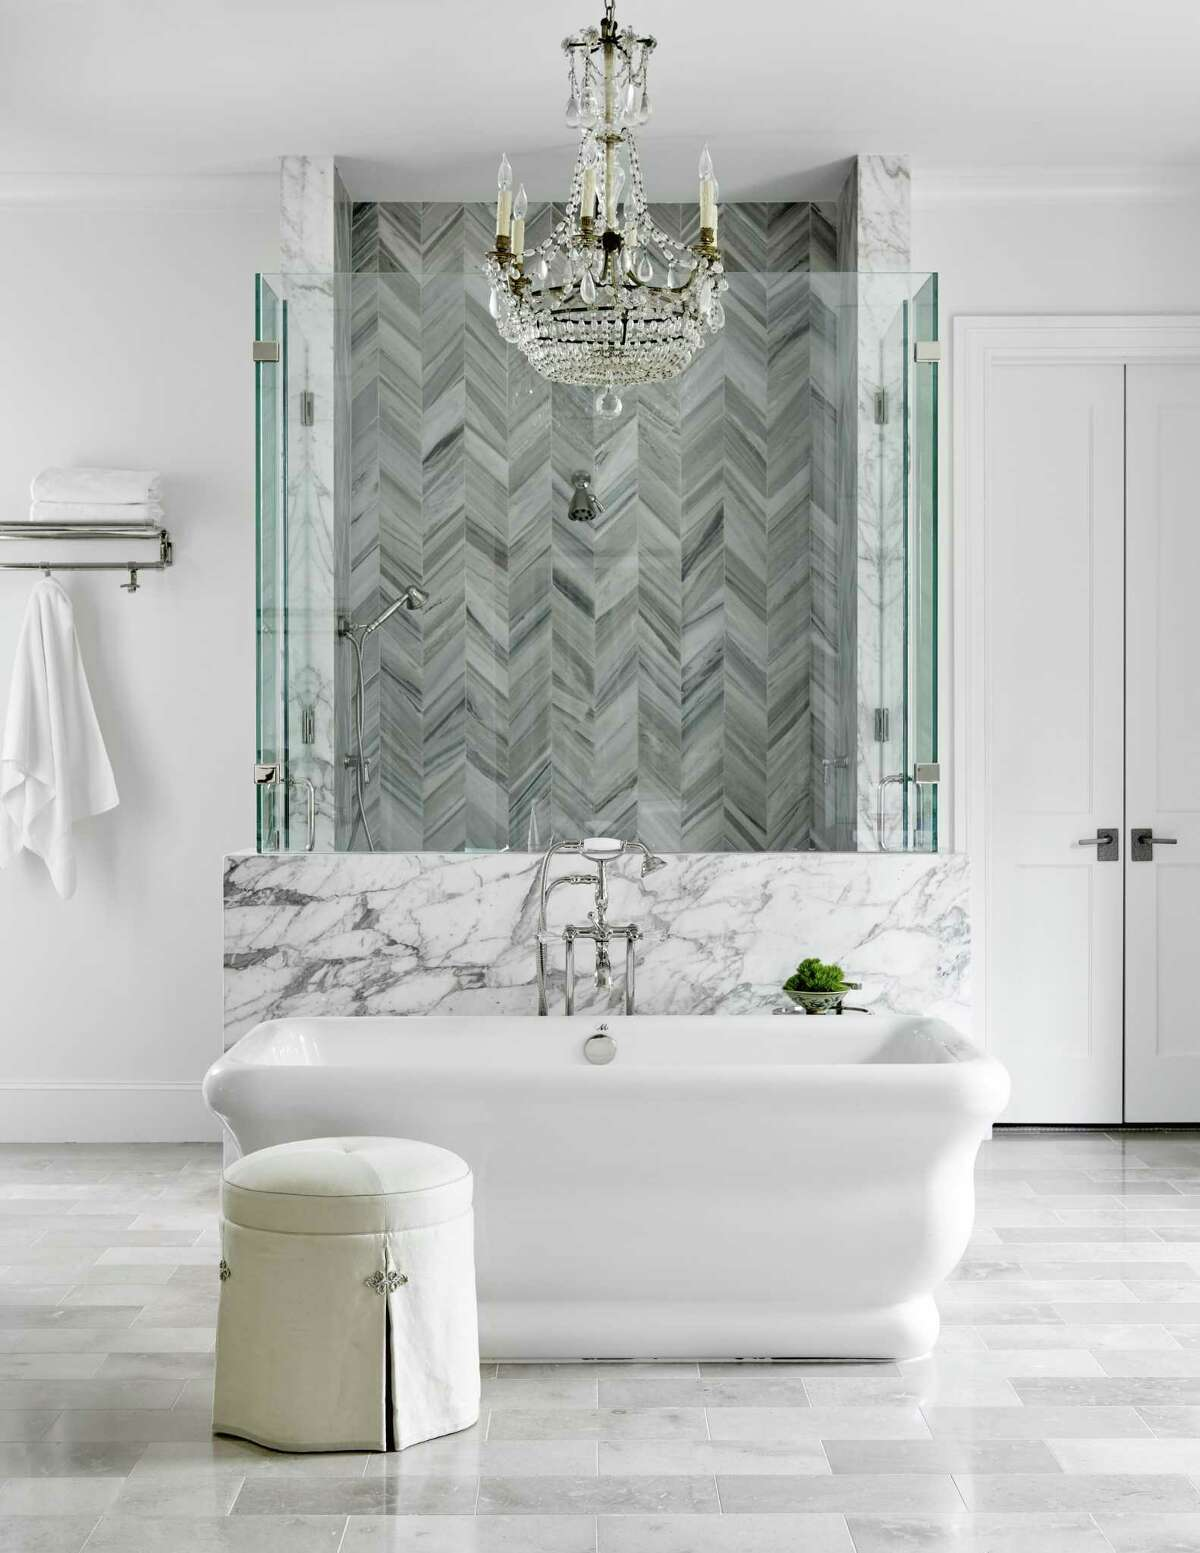 After: In a gray-white palette, the dazzling master bathroom now could grace the cover of any home decor magazine. Carrara marble laid in a herringbone pattern adds personality to the shower. In front of the shower sits a freestanding bathtub in a sculptural design.